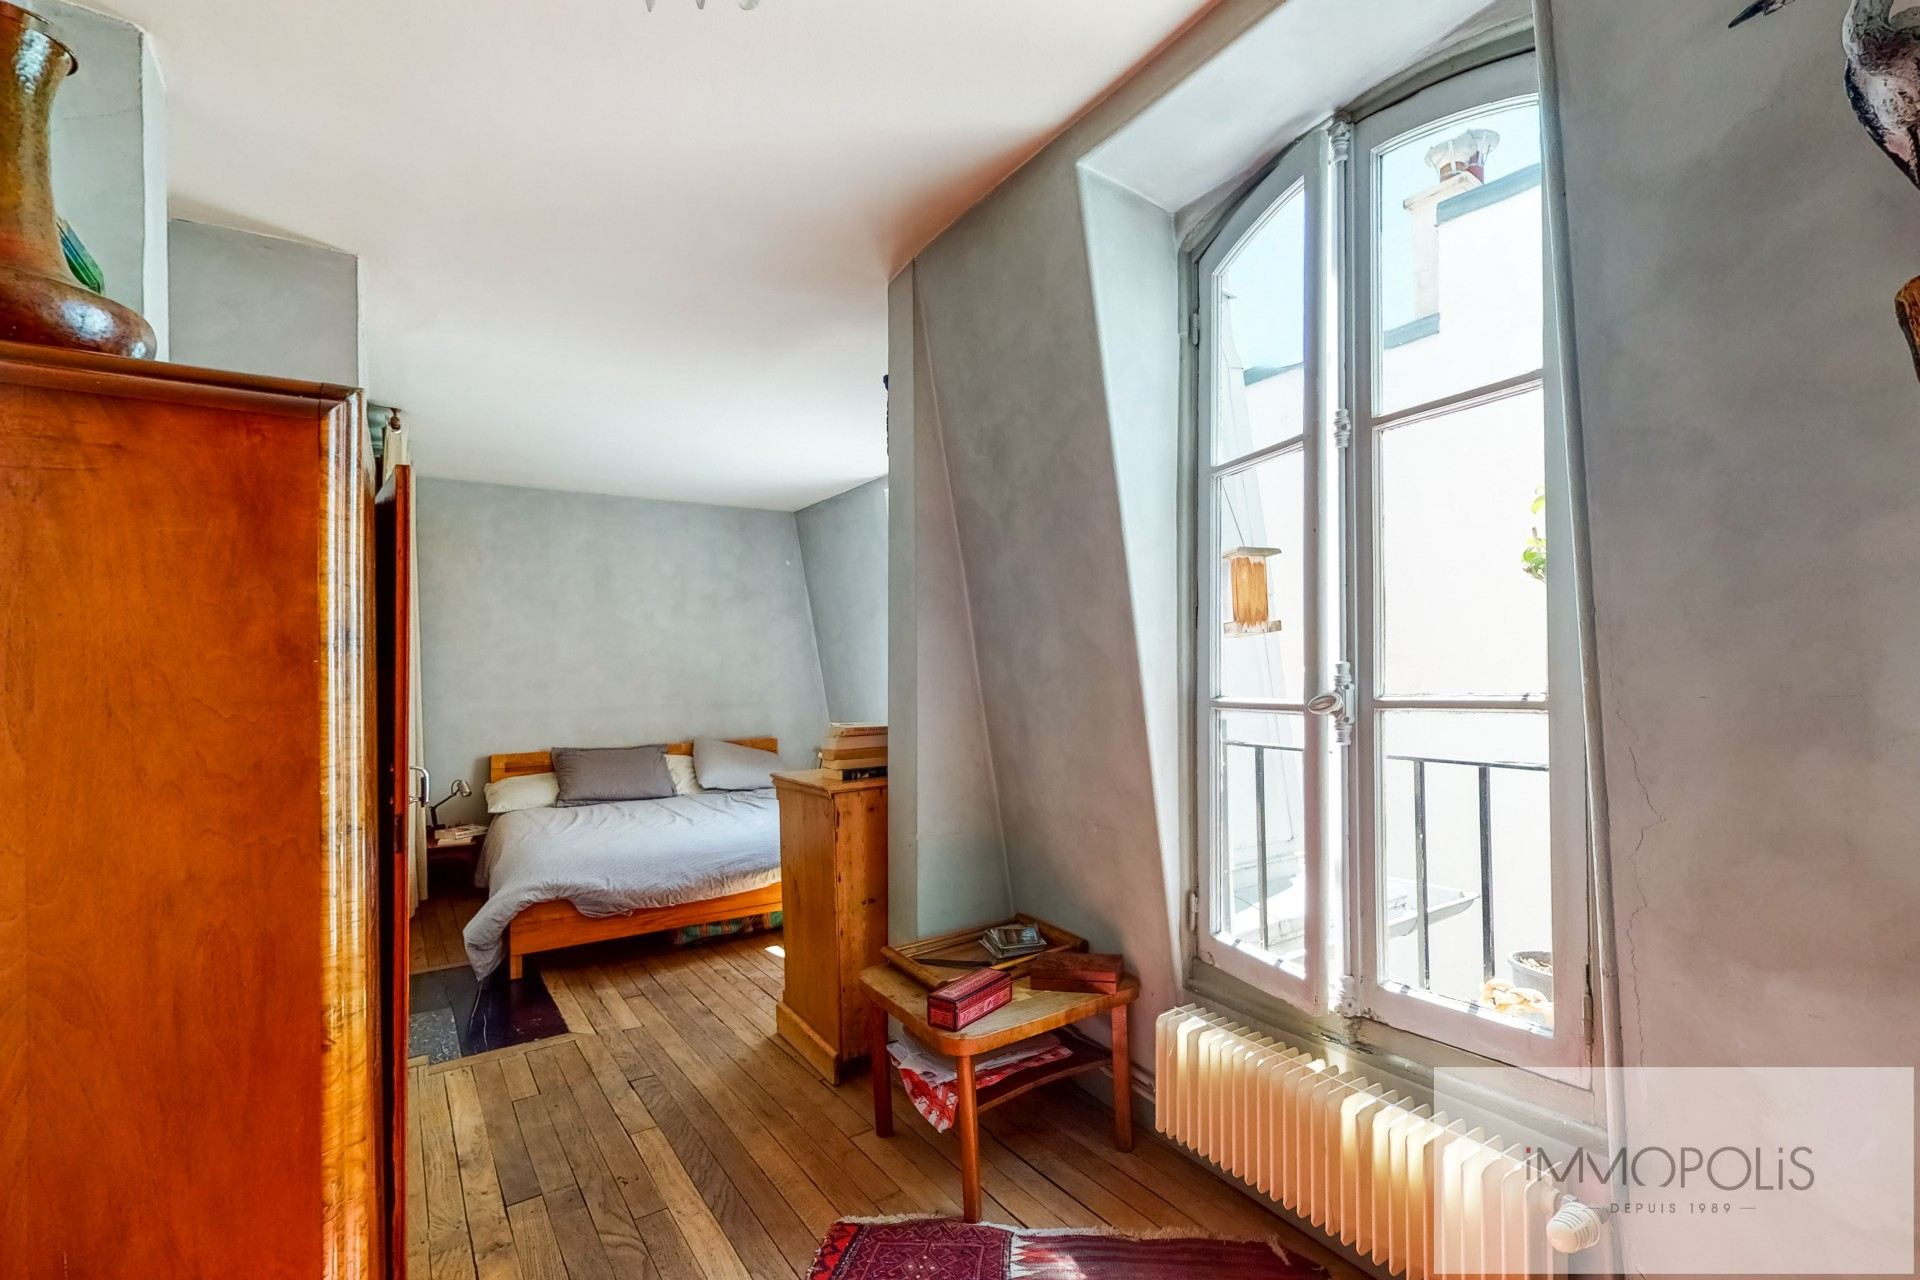 Atypical apartment to renovate, full of charm, rue Richard Lenoir – Paris XIth. 4